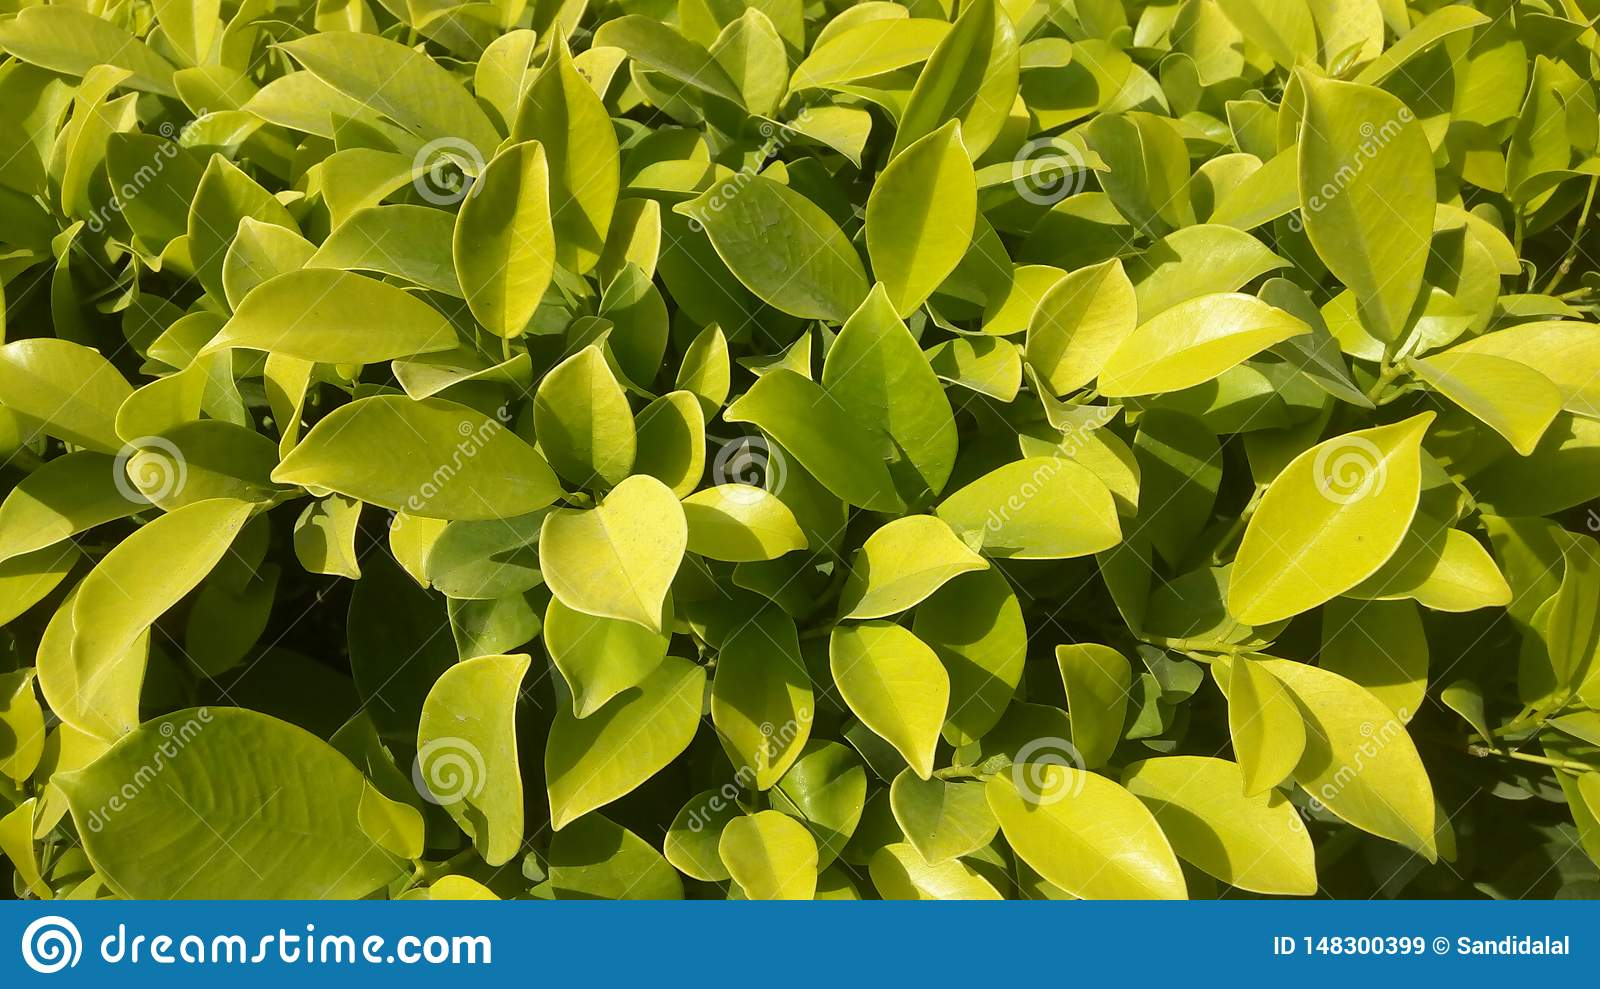 Hedge green plant, natural texture, tiny green leaves in the garden